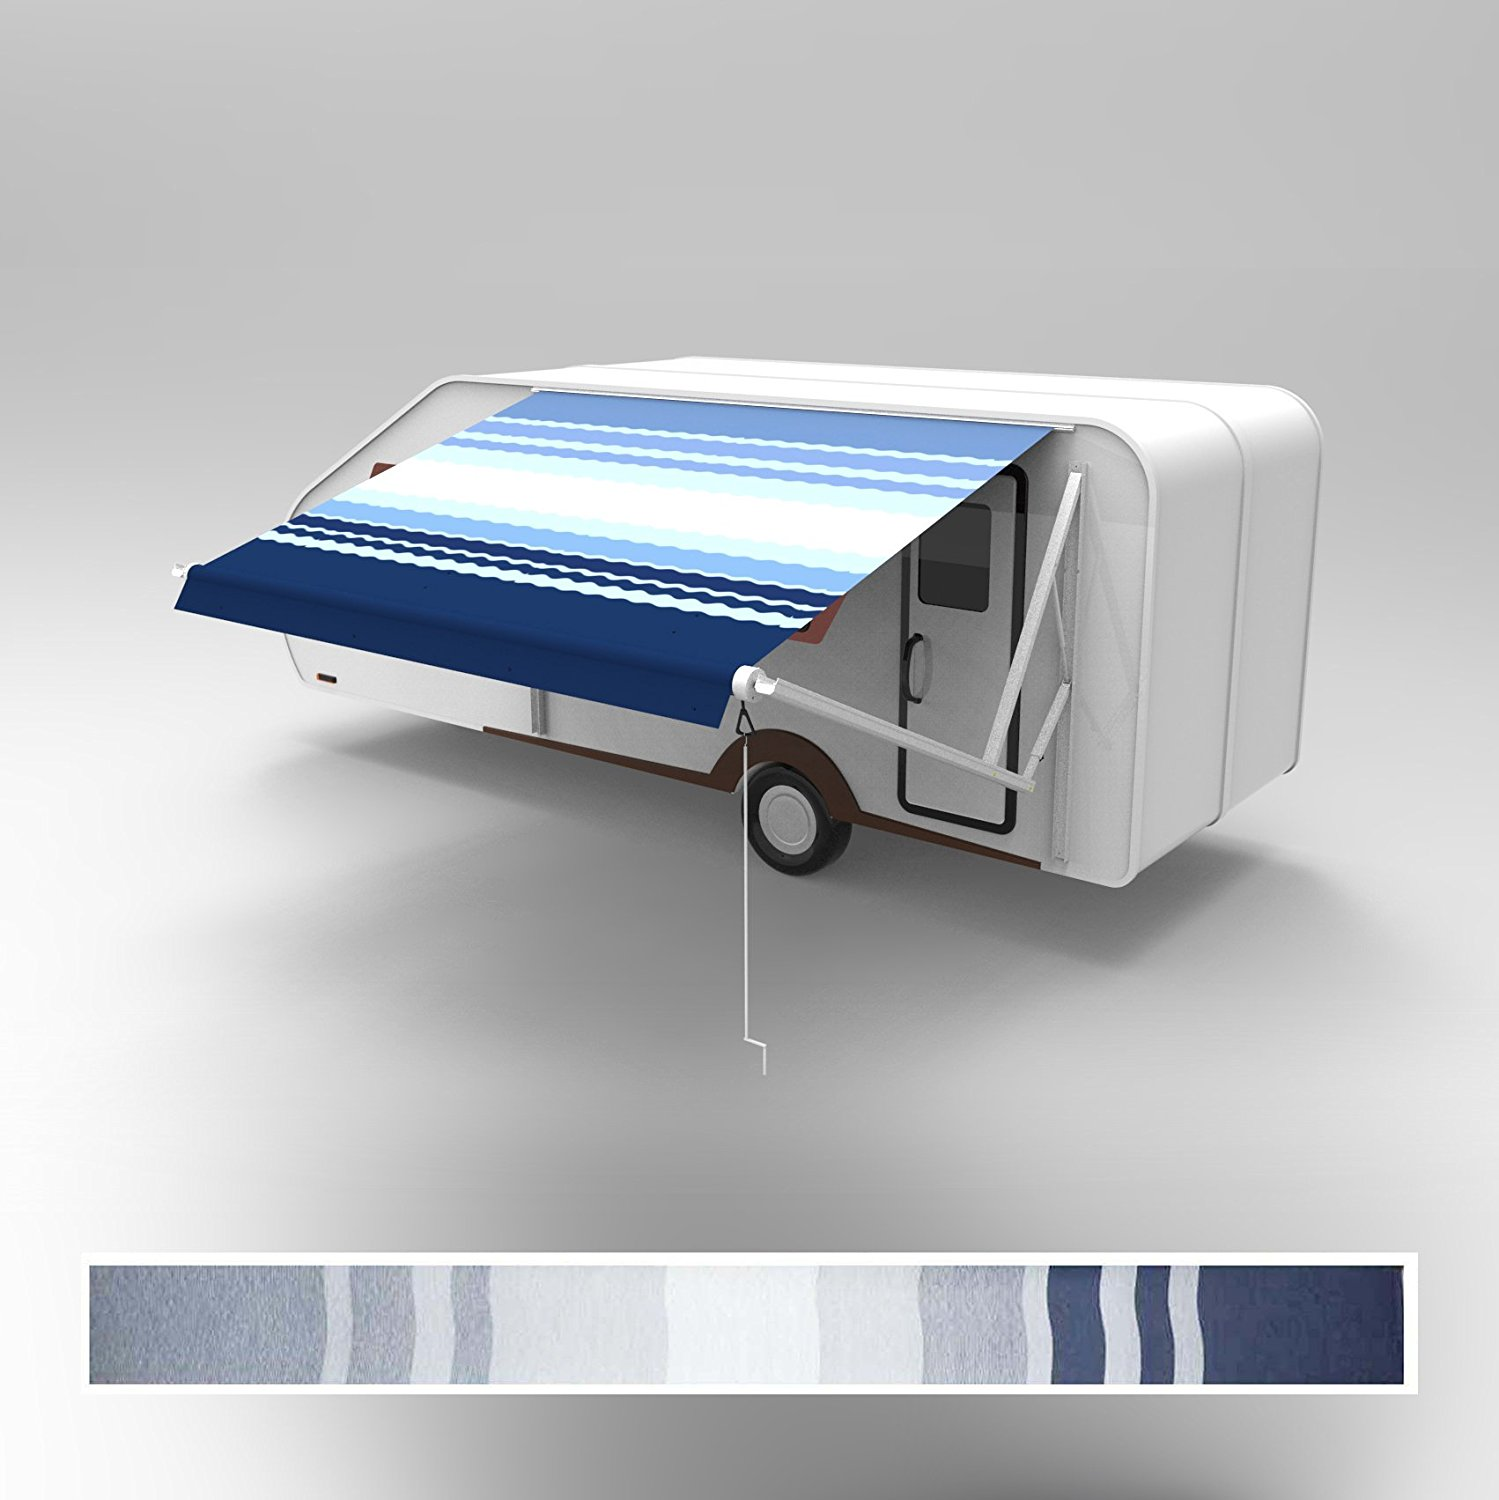 RVAWM8X8BLSTR32 Motorized Retractable RV/Patio Awning 8 x 8 Feet Blue and White